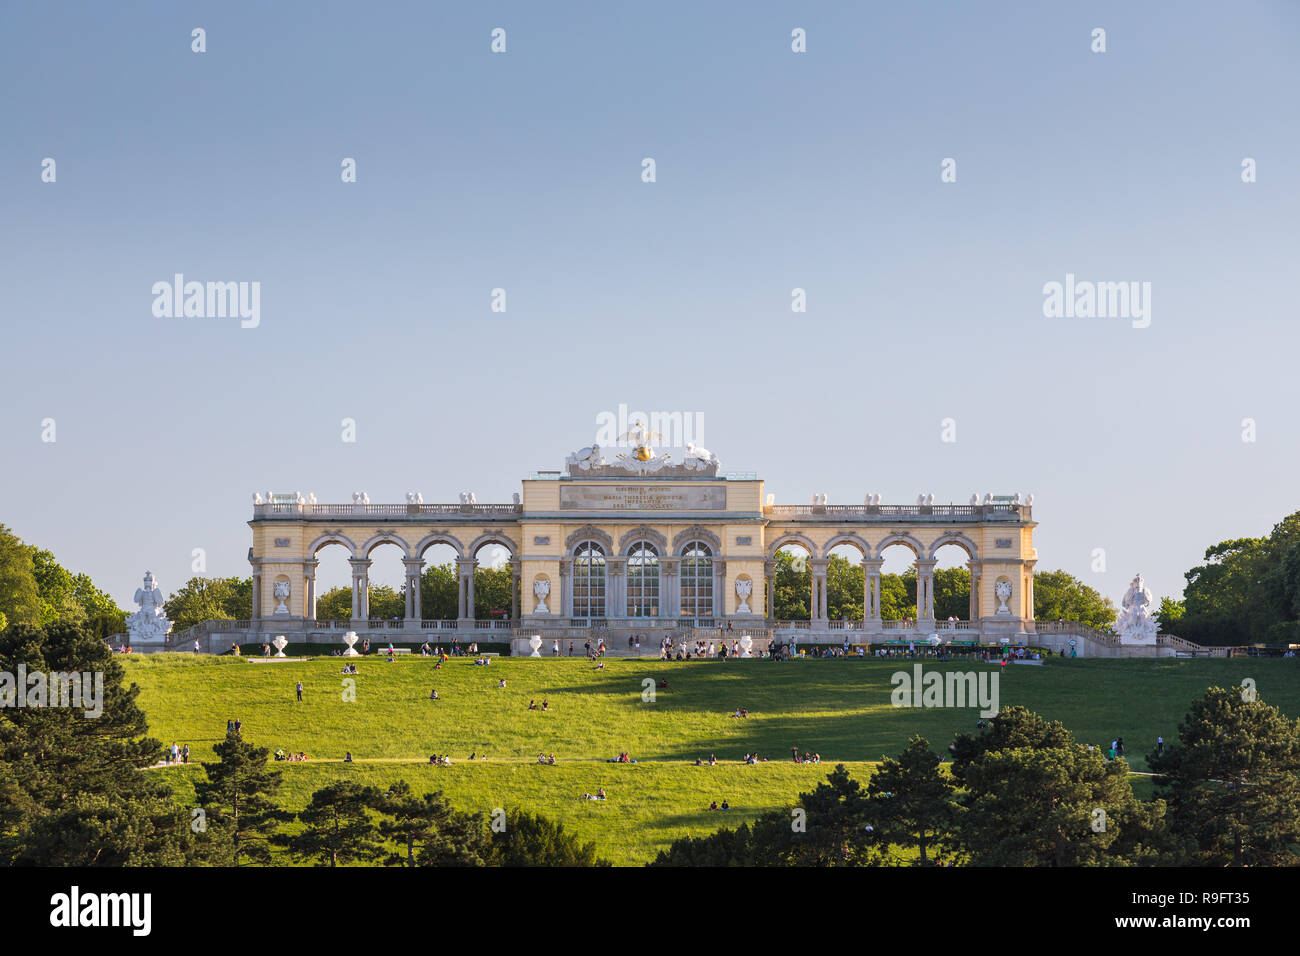 Schönbrunn Palace with the gardens with the Neptune Fountain and the Glorietter was the main summer residence of the Habsburg rulers, it is located i - Stock Image